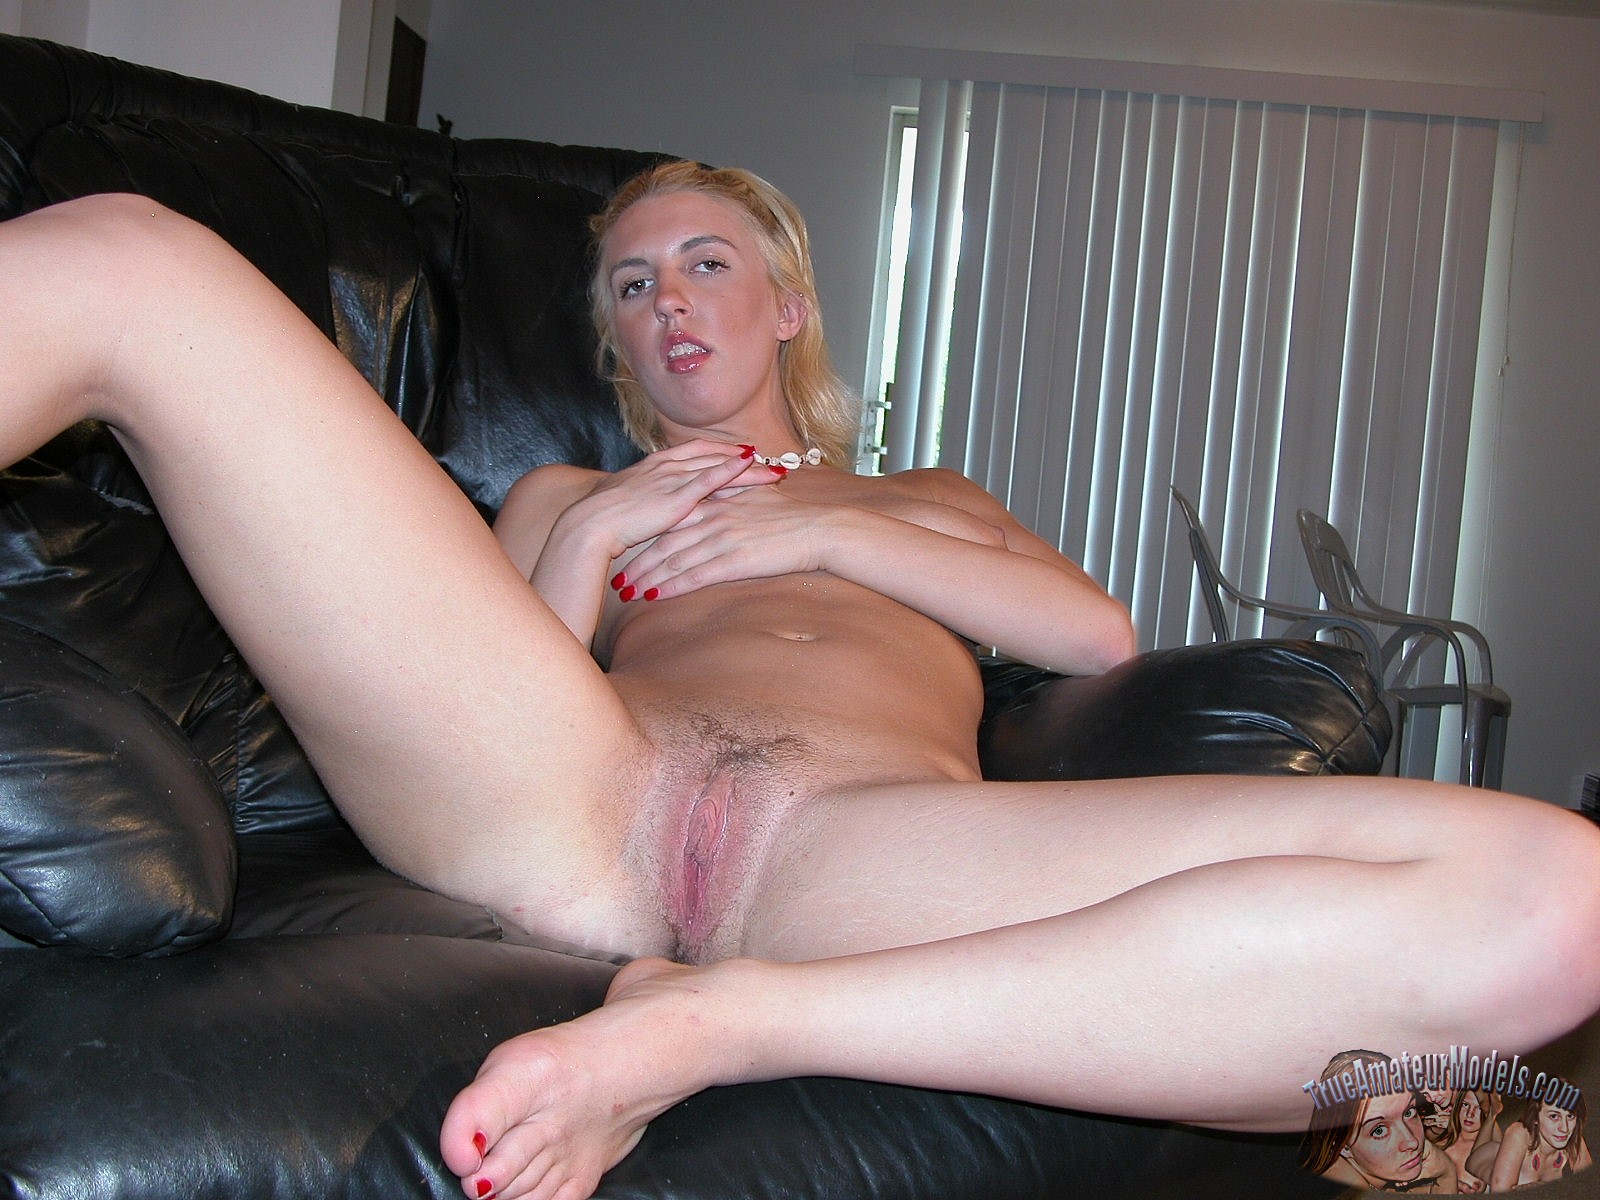 blonde-amature-porn6